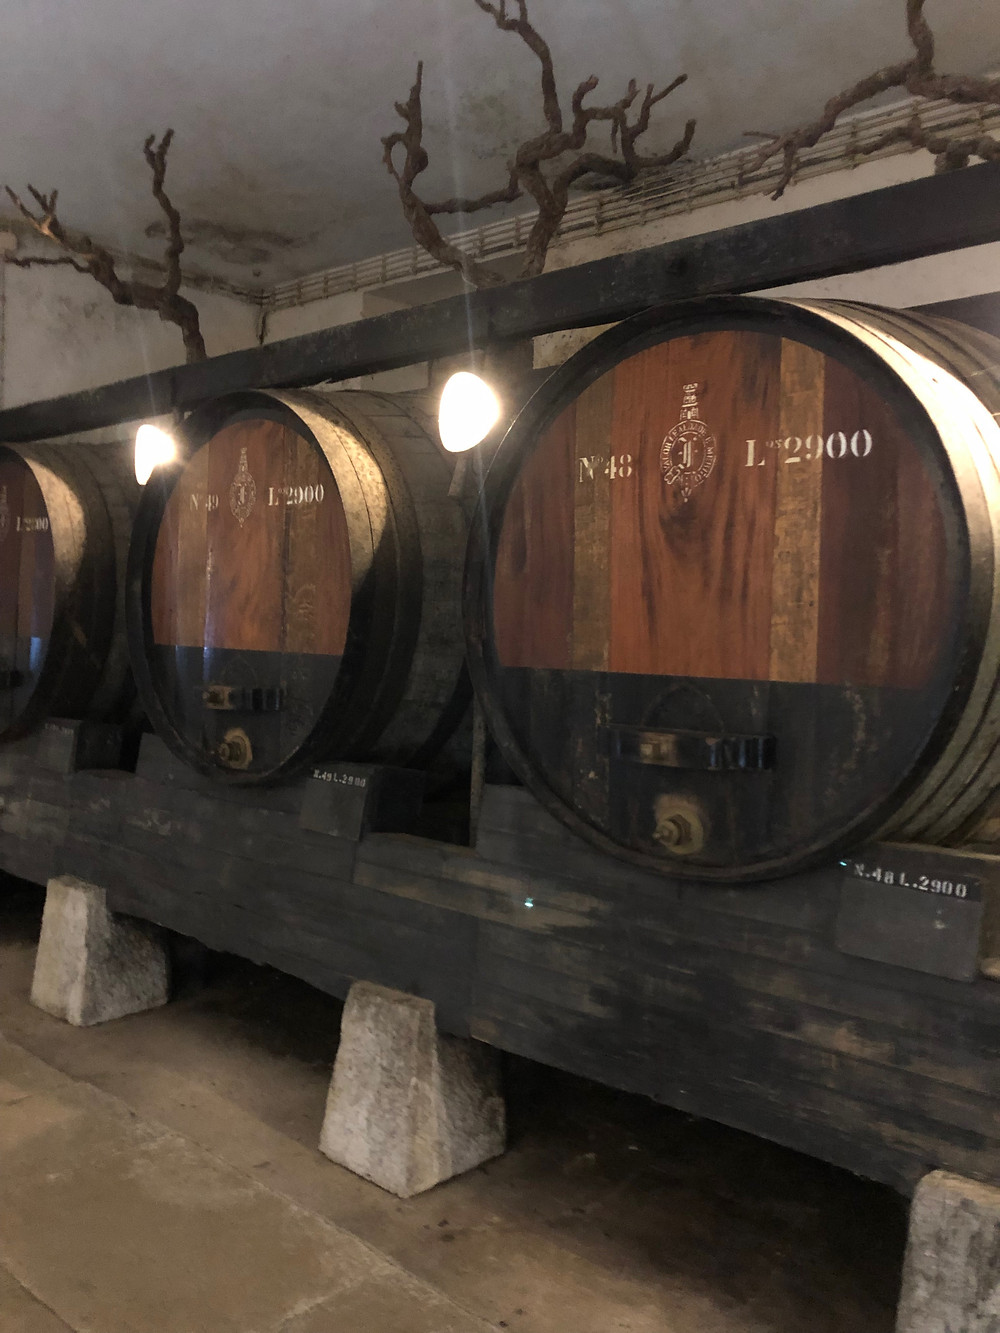 large old oak barrels and casks for Periquita wine ageing at José Maria da Fonseca winery in Setubal wine region